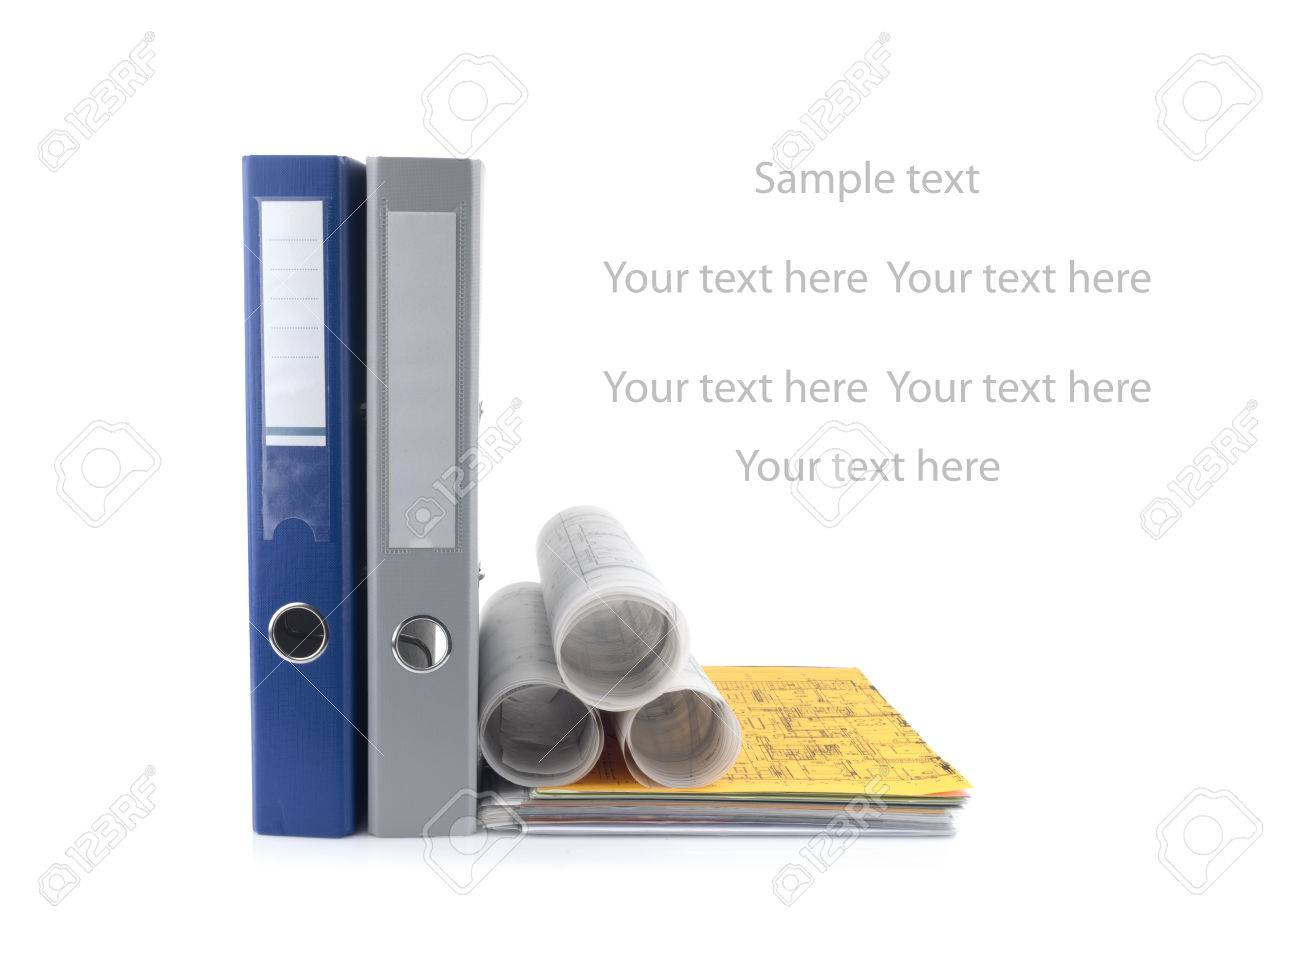 Blue and grey folder document and project drawings, isolated on white background - 35996514